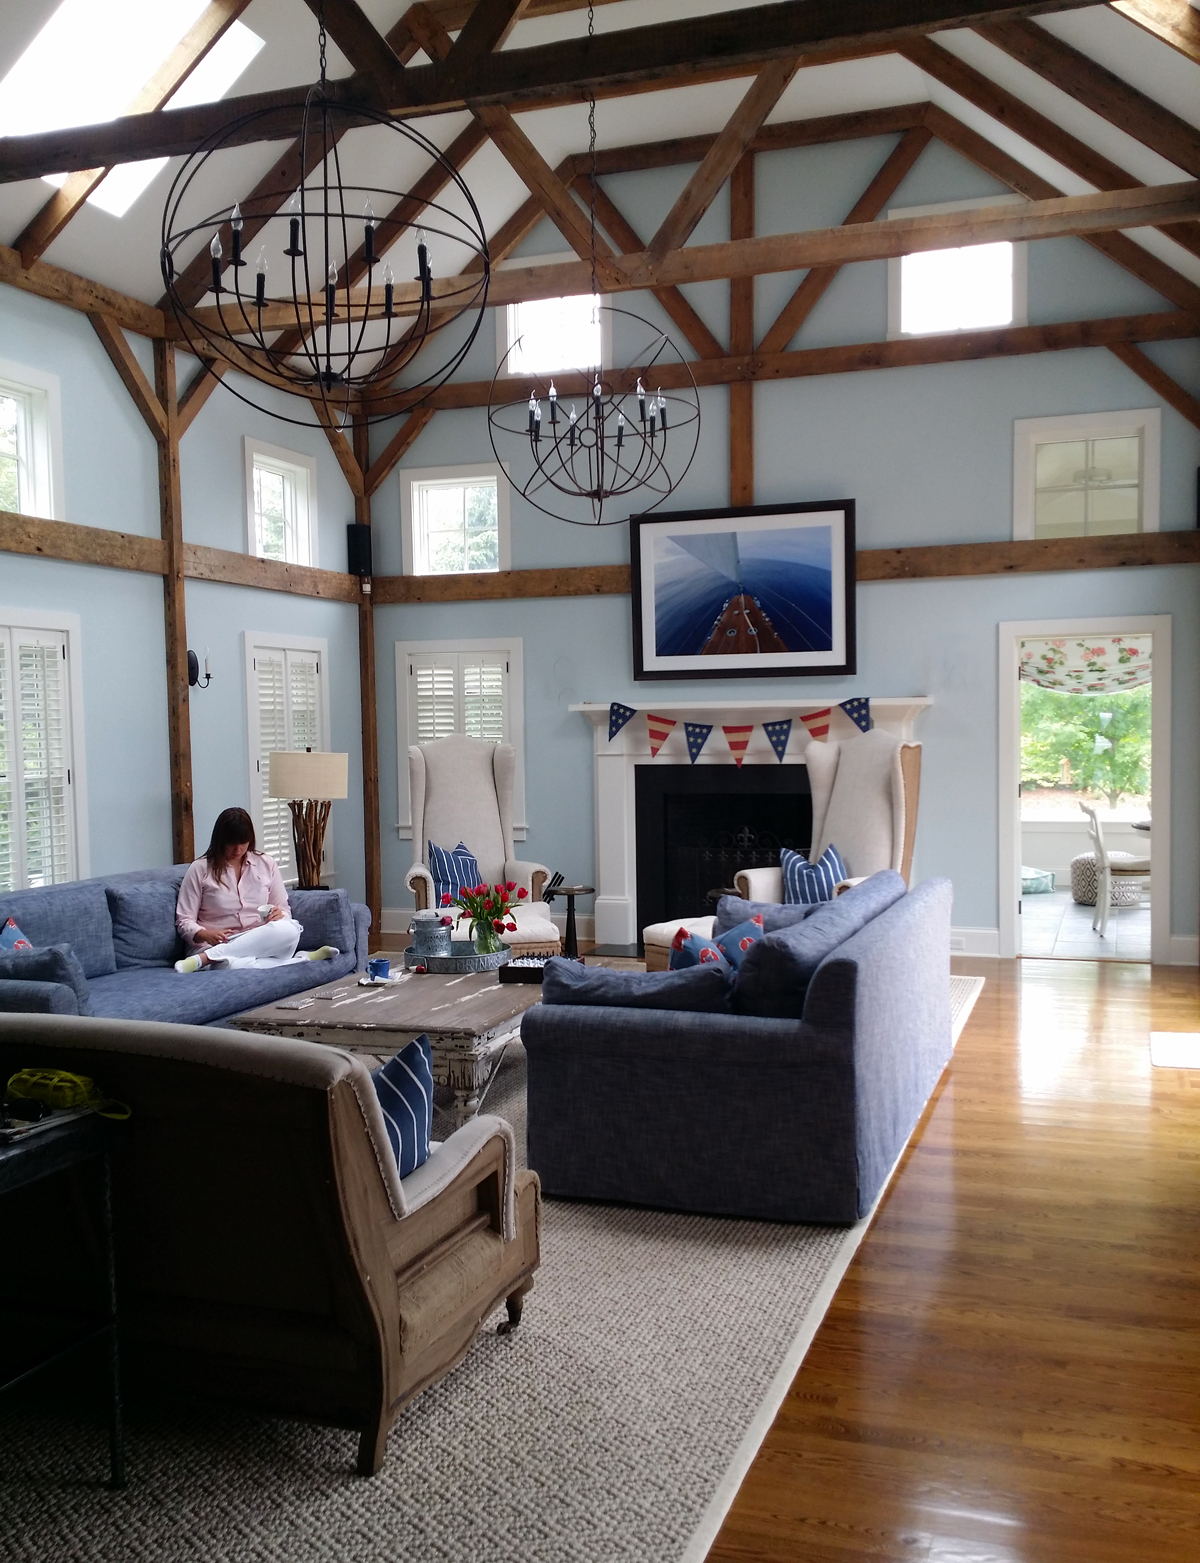 The tones in the wooden deck on the boat shown in this photograph are a great match to the wooden beams throughout this room.